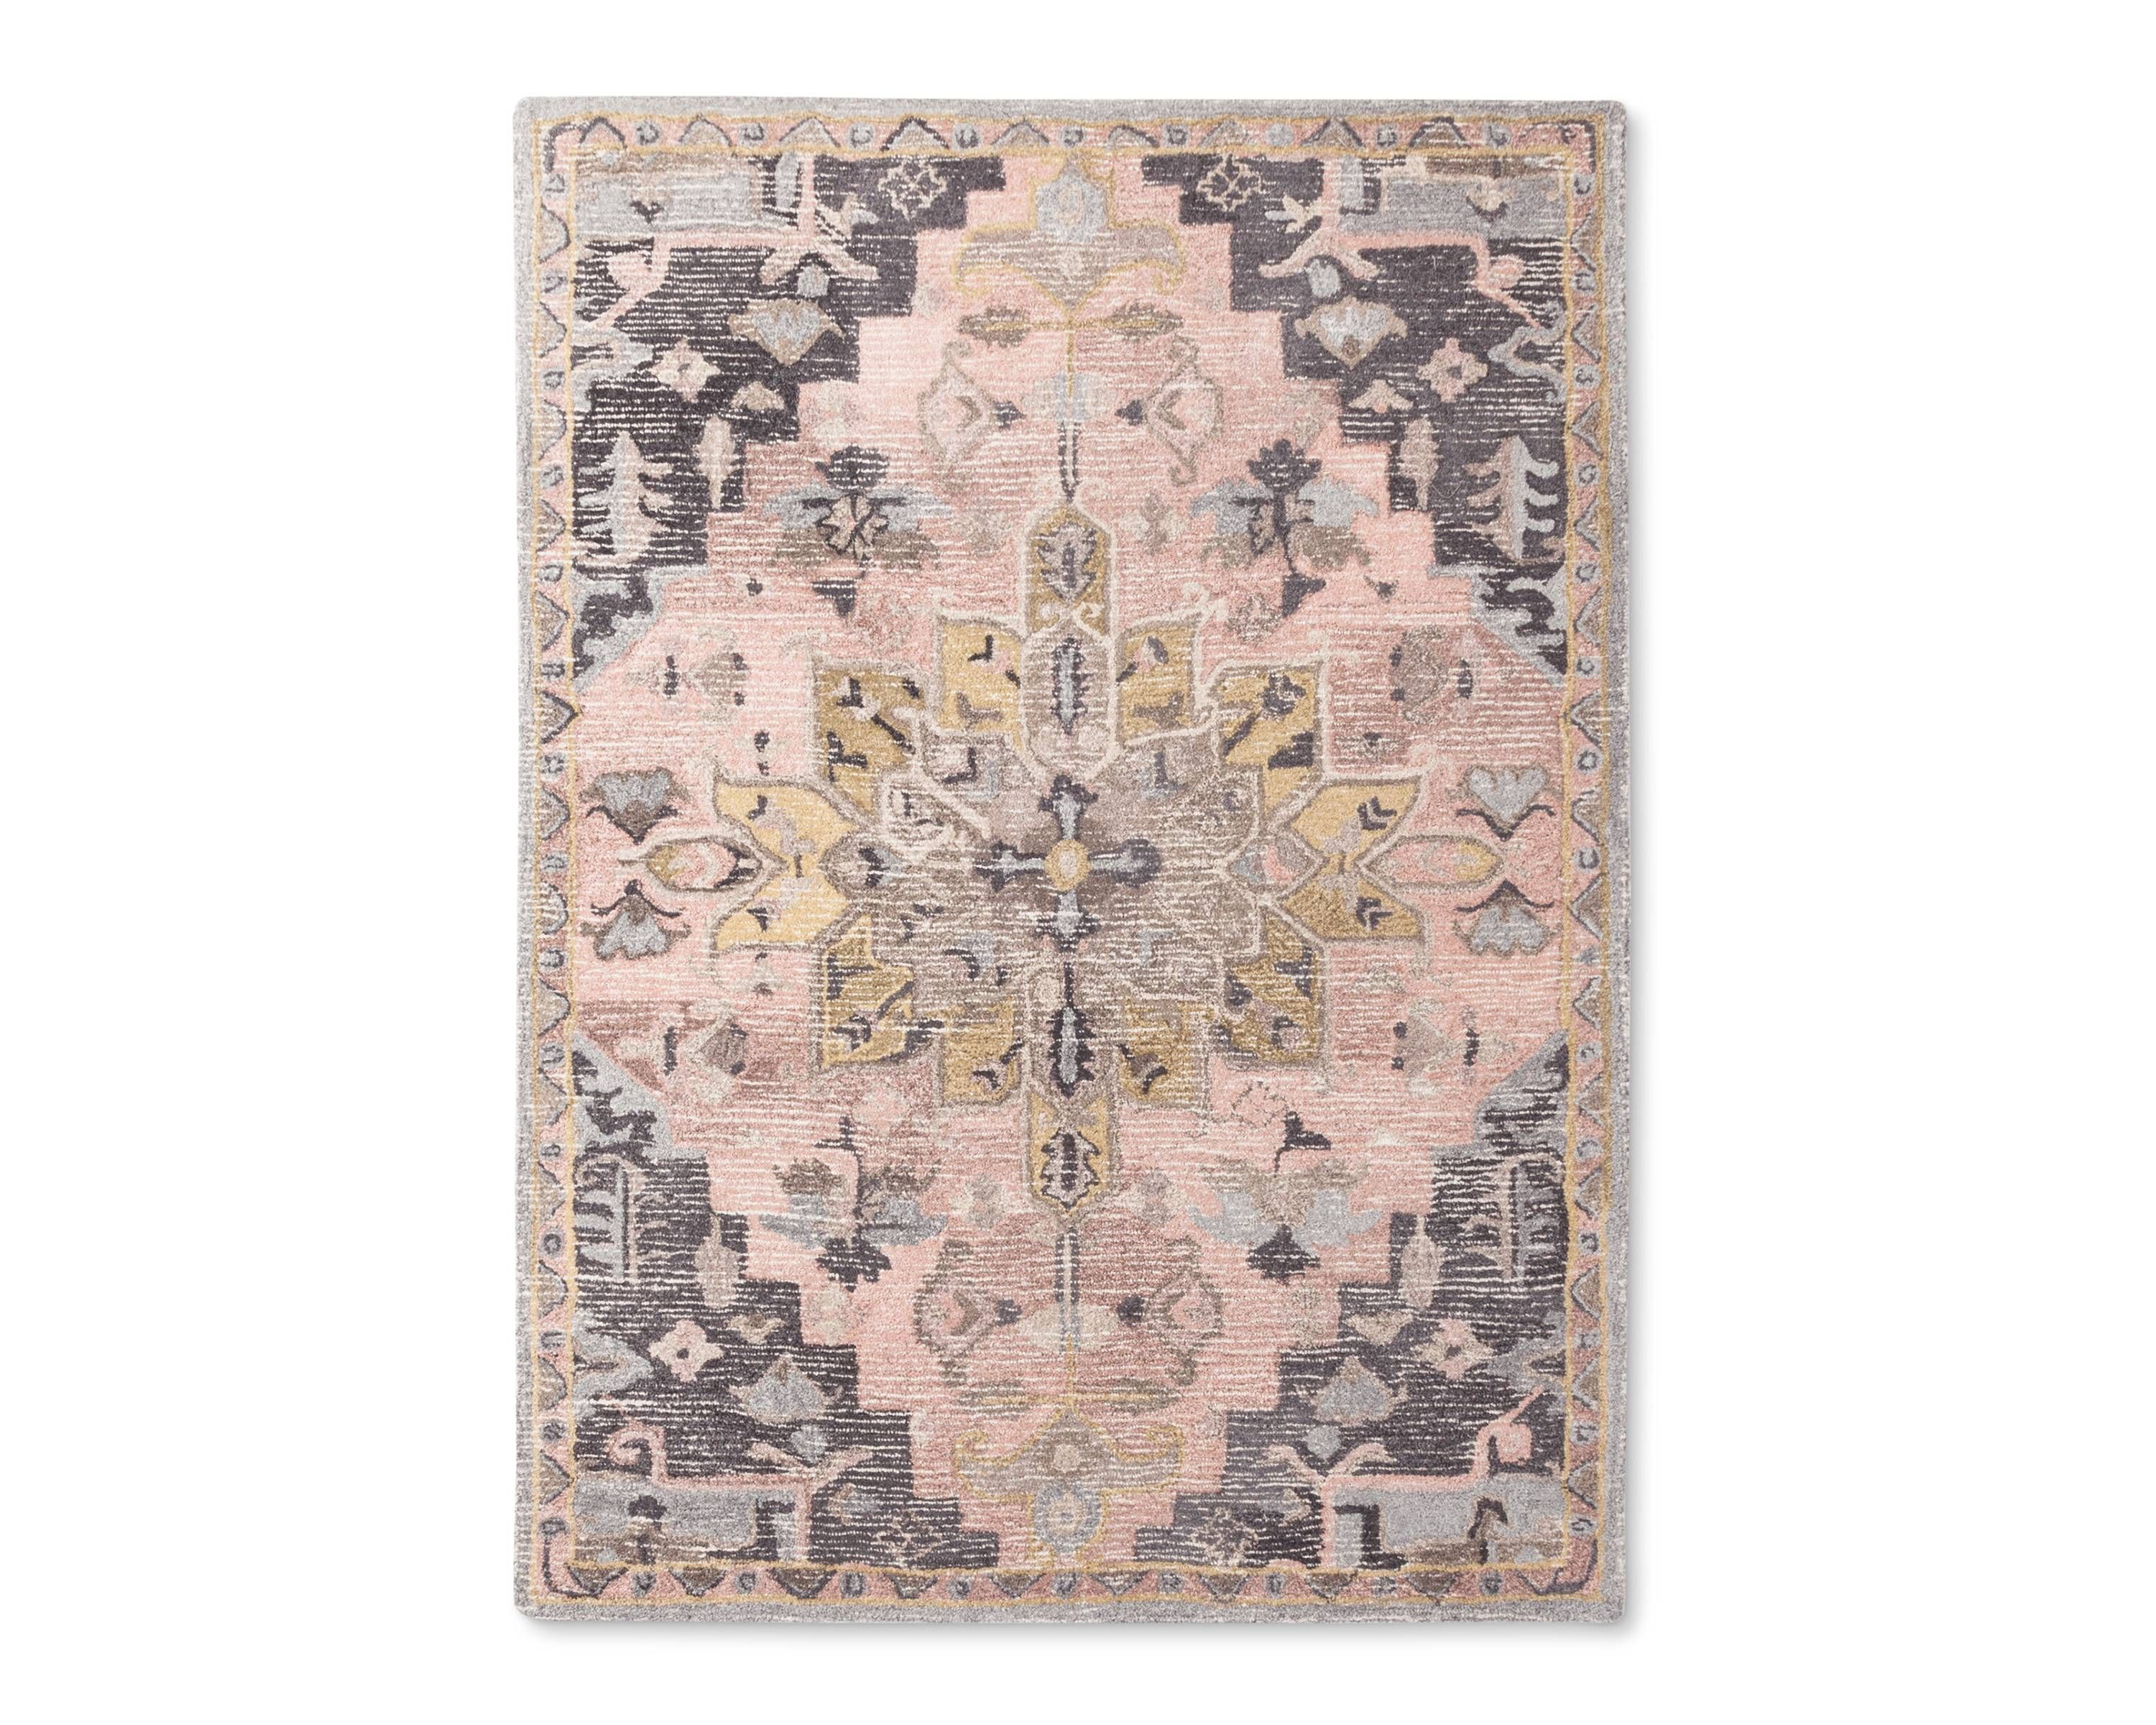 Pink And Gray Vintage Wool Rug Target Https Www P Tufted Area Threshold A 51583782